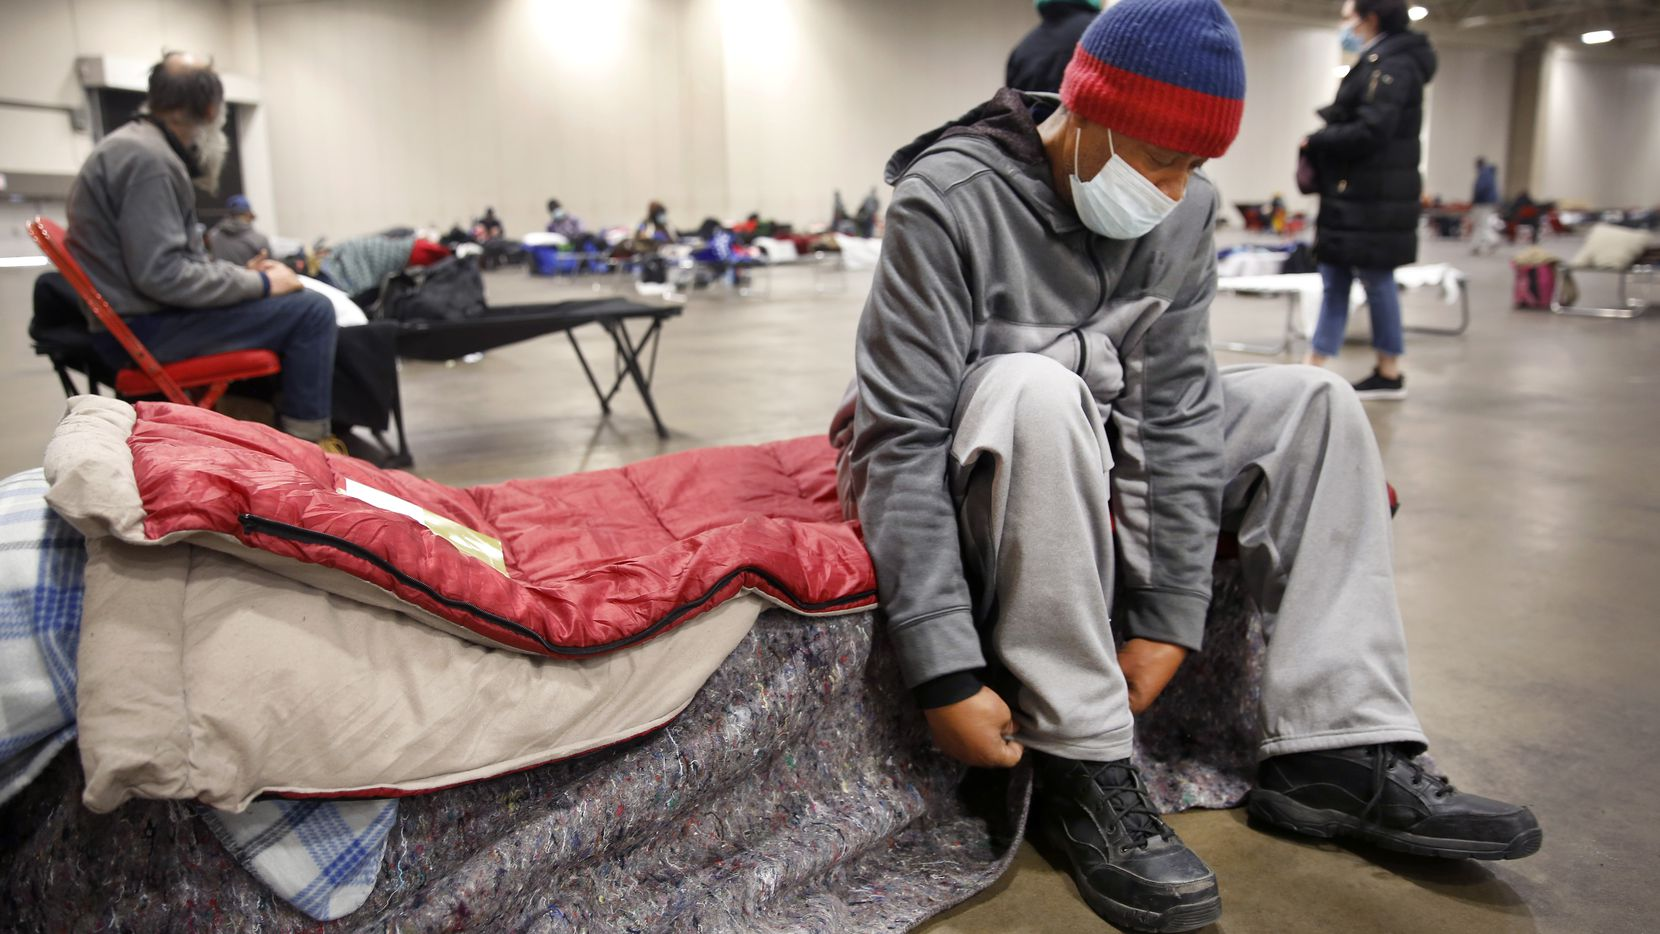 Pierre Scott, a 59 year-old guest and volunteer at a warming center run by OurCalling, changed socks on his socially-distanced cot at the Kay Bailey Hutchison Convention Center in Dallas, Tuesday, February 16, 2021. Scott like a lot of other folks, found refuge from the overnight sub-zero temperatures. (Tom Fox/The Dallas Morning News)